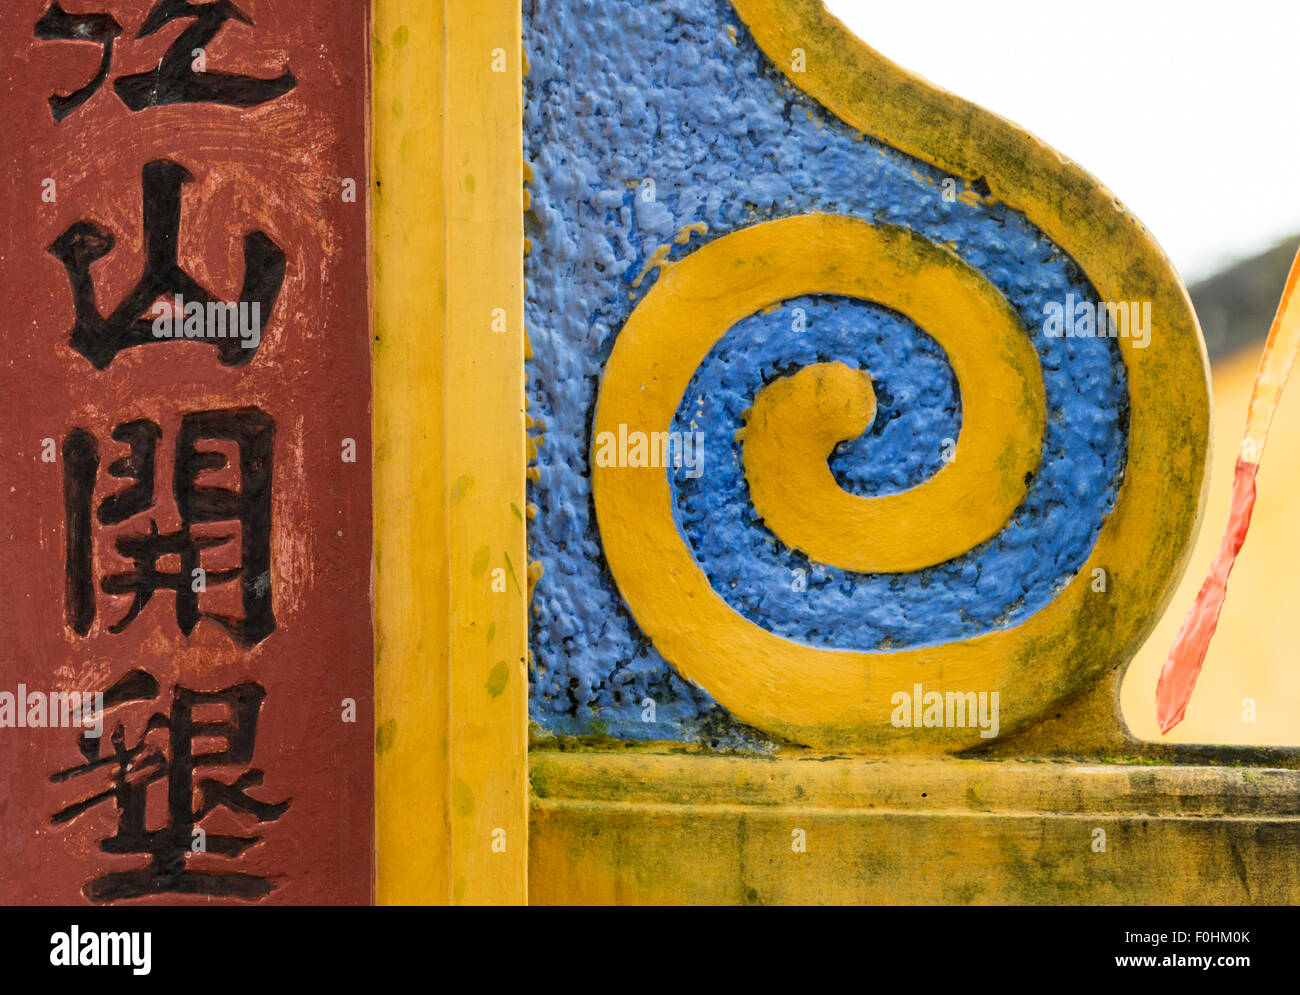 Detail of multicolored gate of Dinh Cam Pho Communal Hall, Hoi An, Vietnam, with yellow scroll and Chinese writing - Stock Image